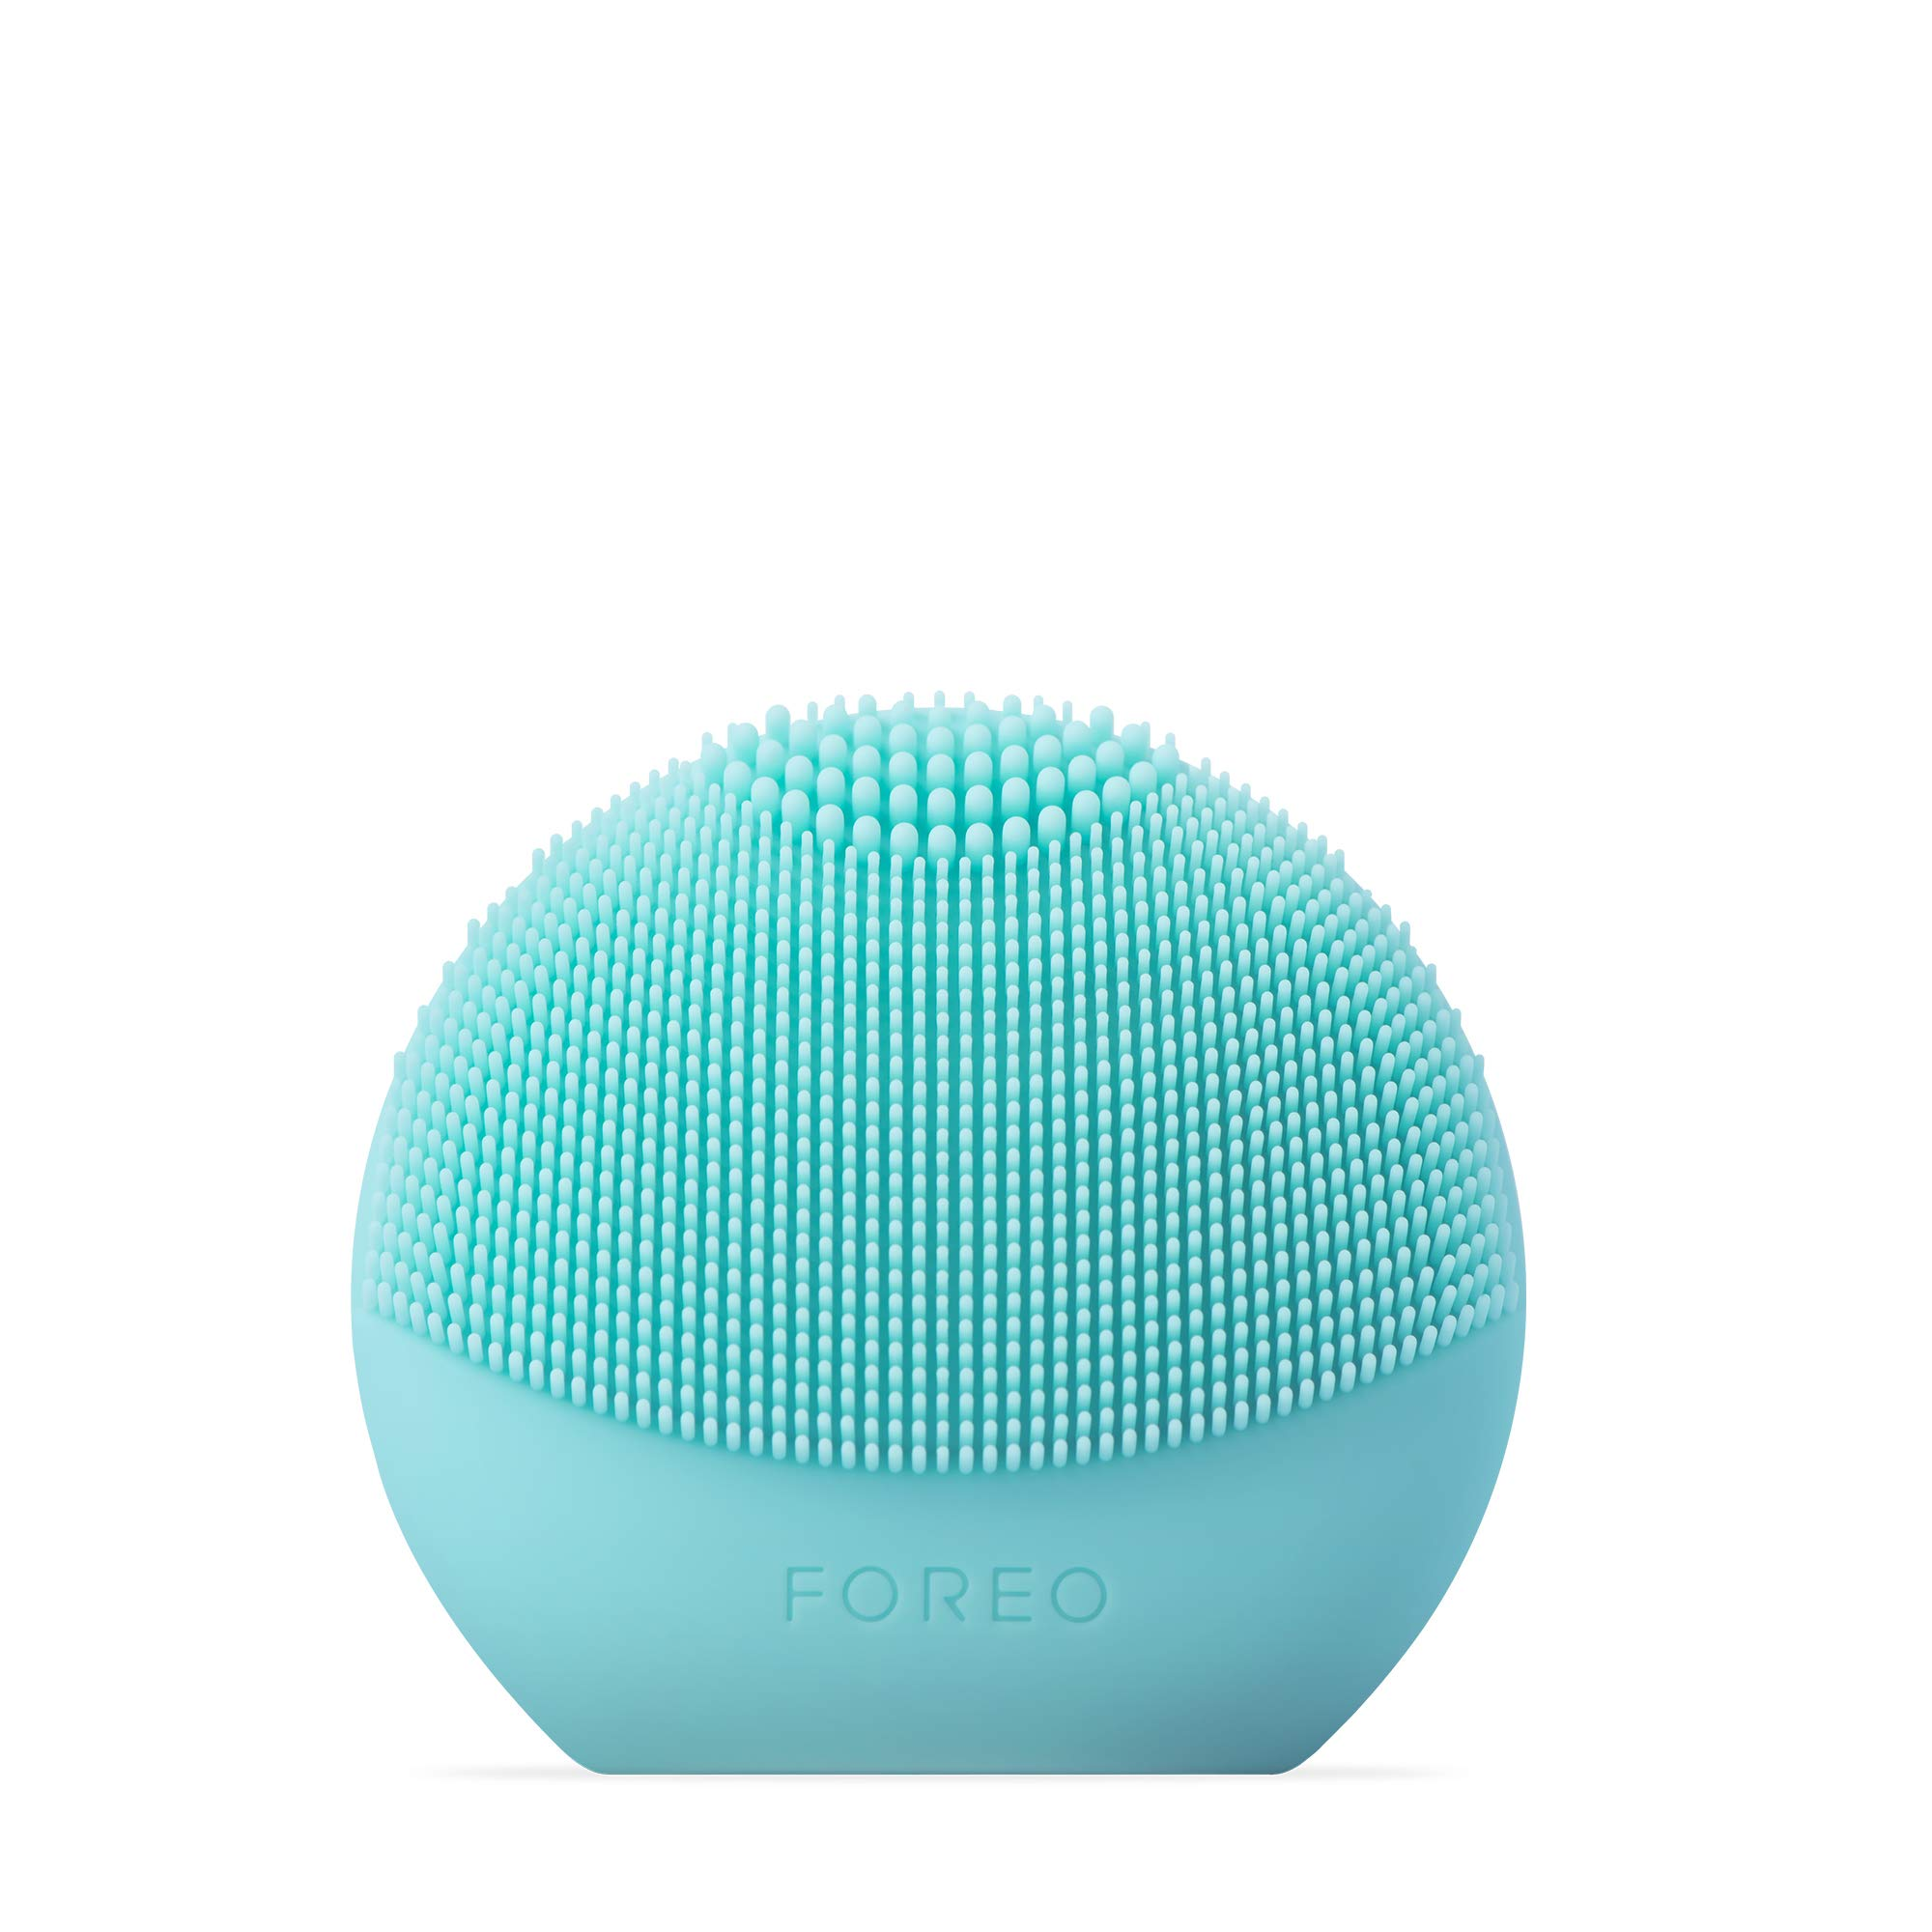 FOREO LUNA fofo Smart Facial Cleansing Brush and Skin Analyzer, Mint, Personalized Cleansing for a Unique Skincare Routine,  Bluetooth & Dedicated Smartphone App